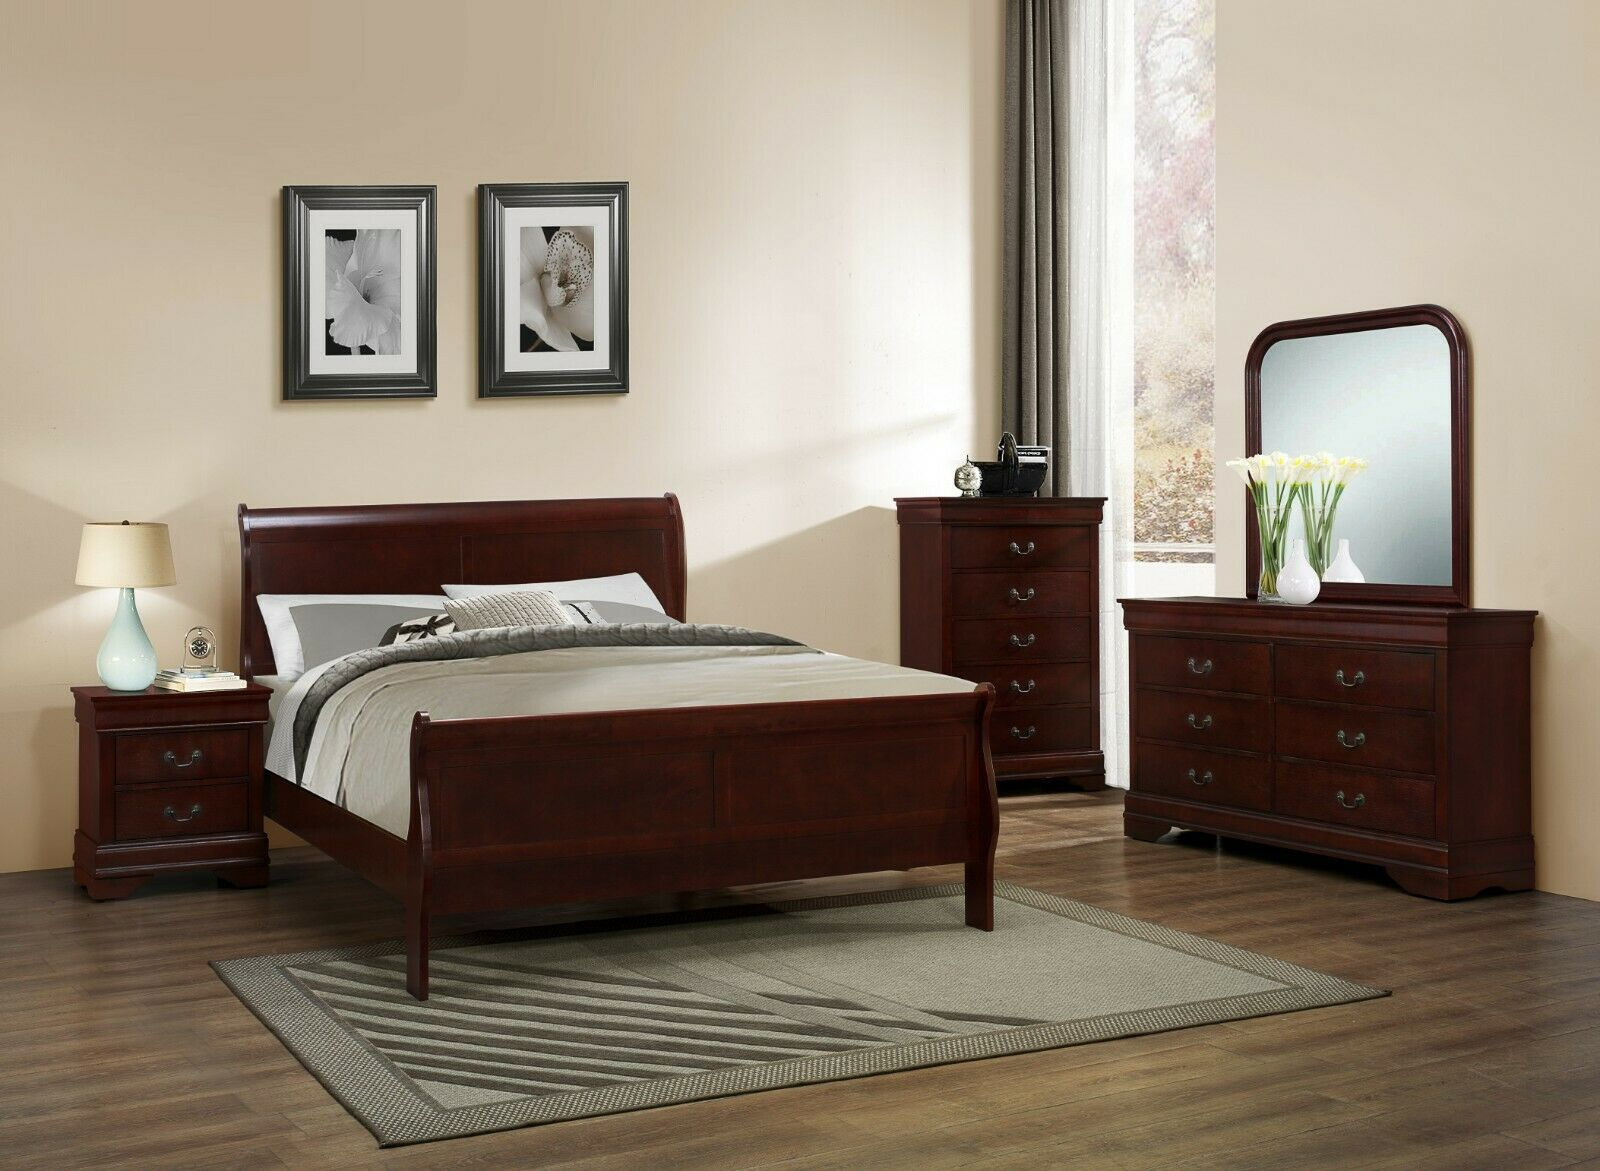 Louis Philippe 4 Piece 5 Piece Full Sleigh Queen Bedroom Set In Cherry Finish For Sale Online